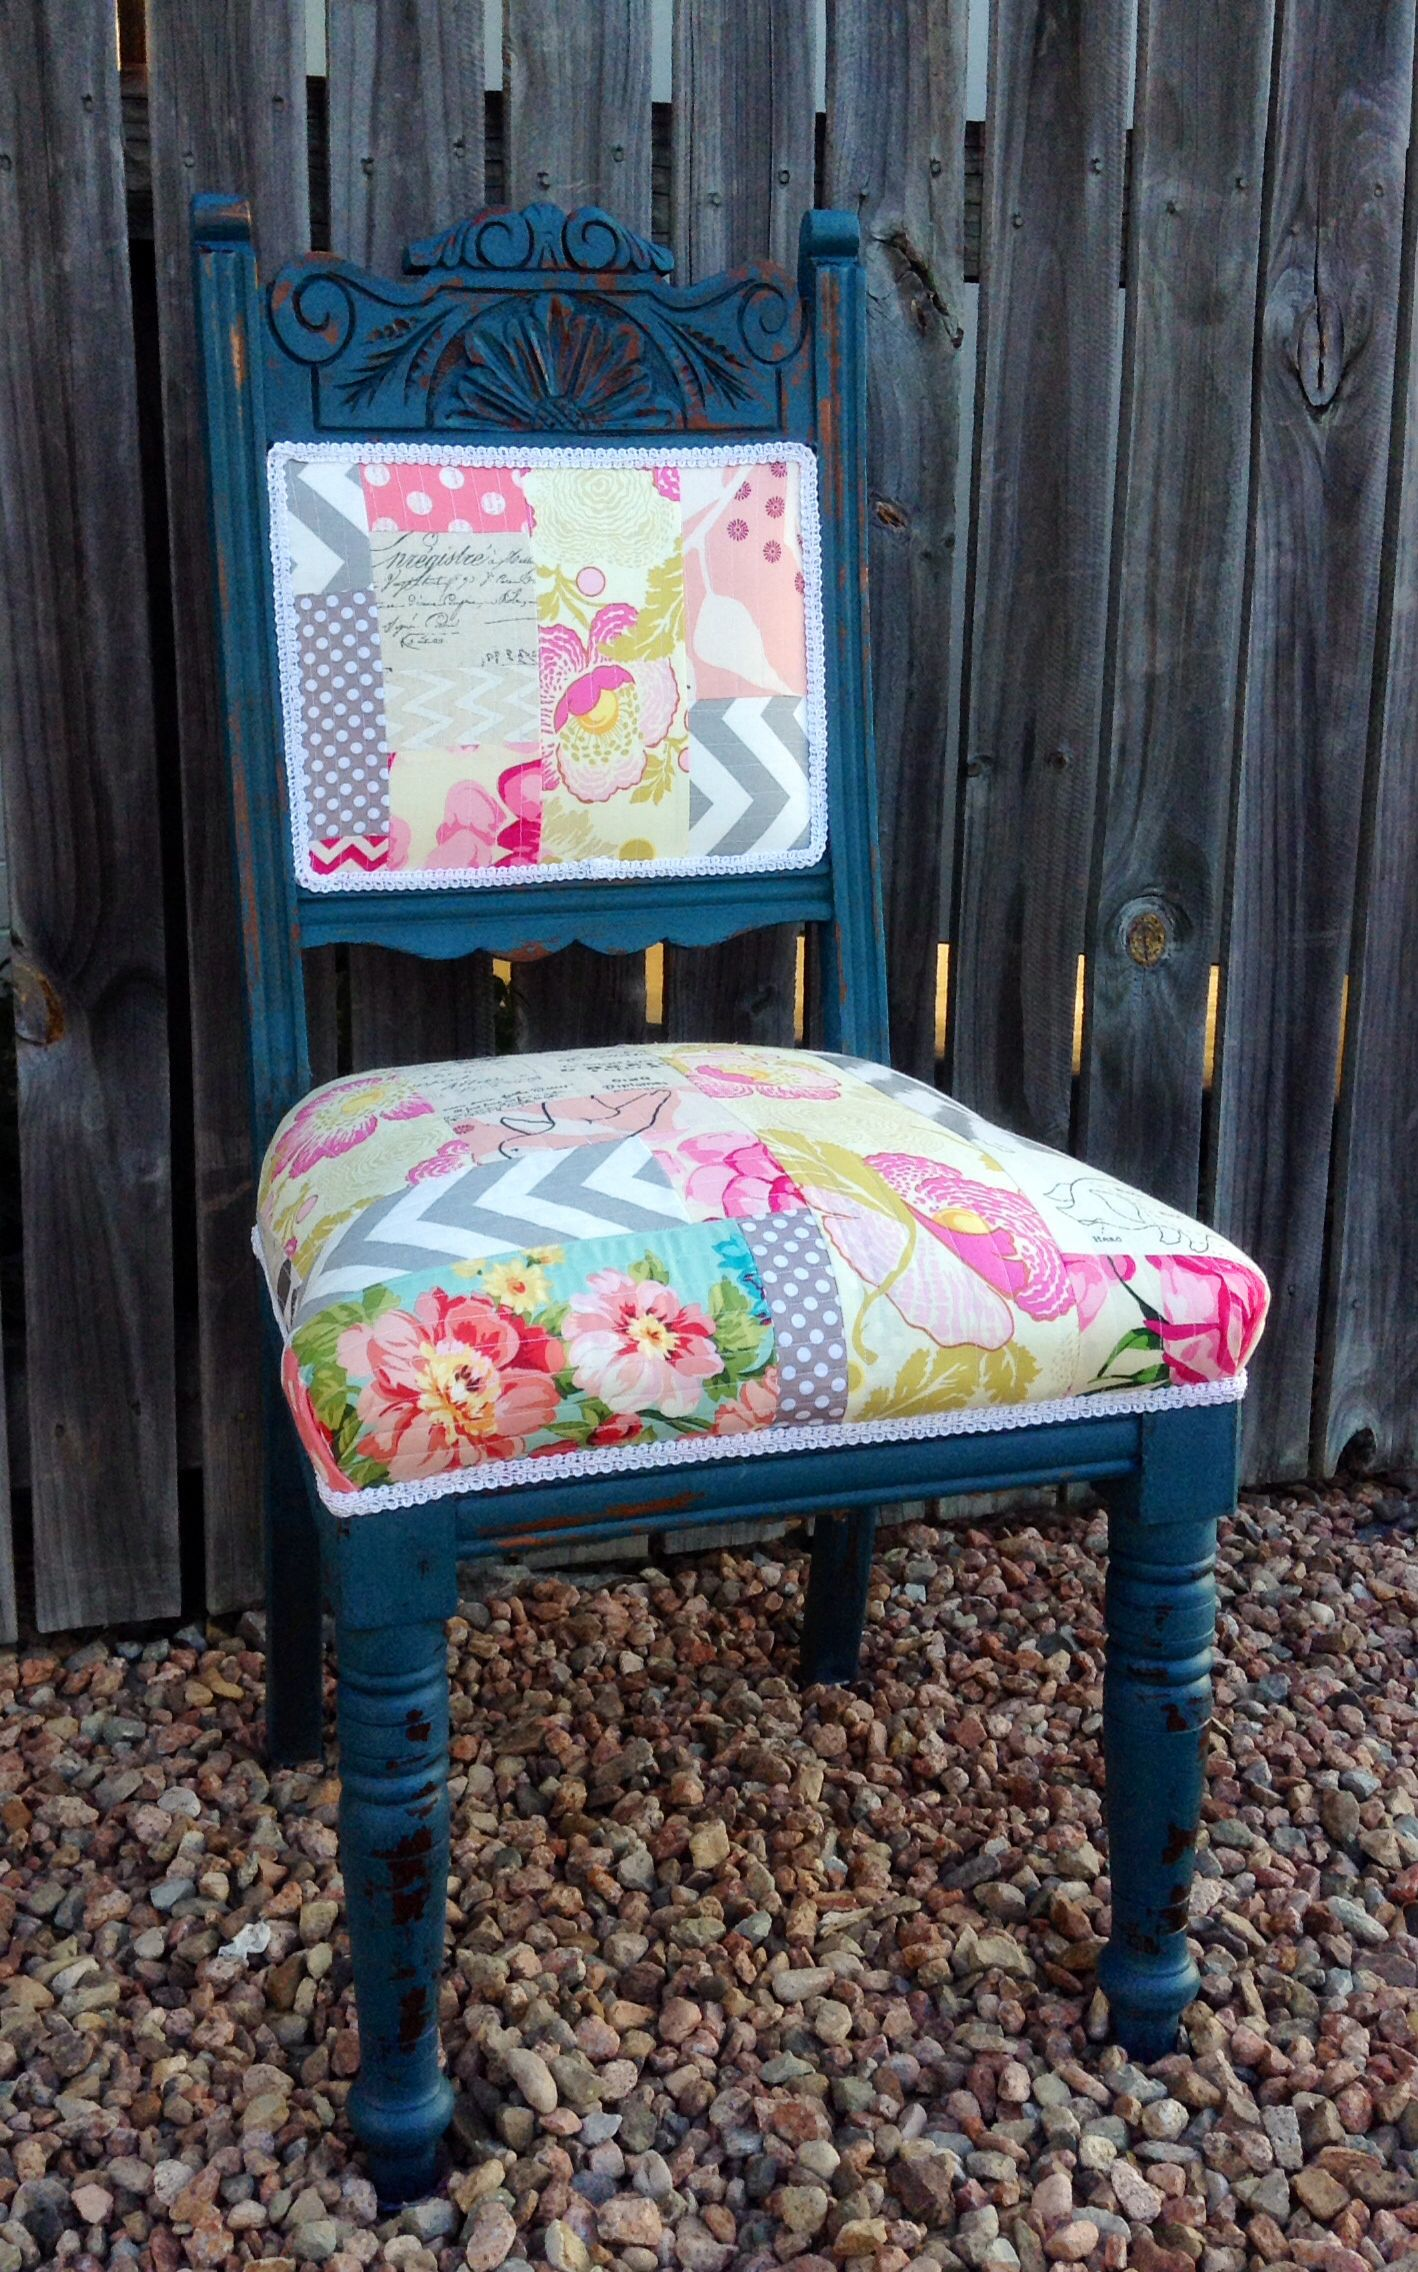 Merveilleux Milk Paint Furniture. Quirky Upholstery. Patchwork Quilted Upholstery. Three  Sisters Design